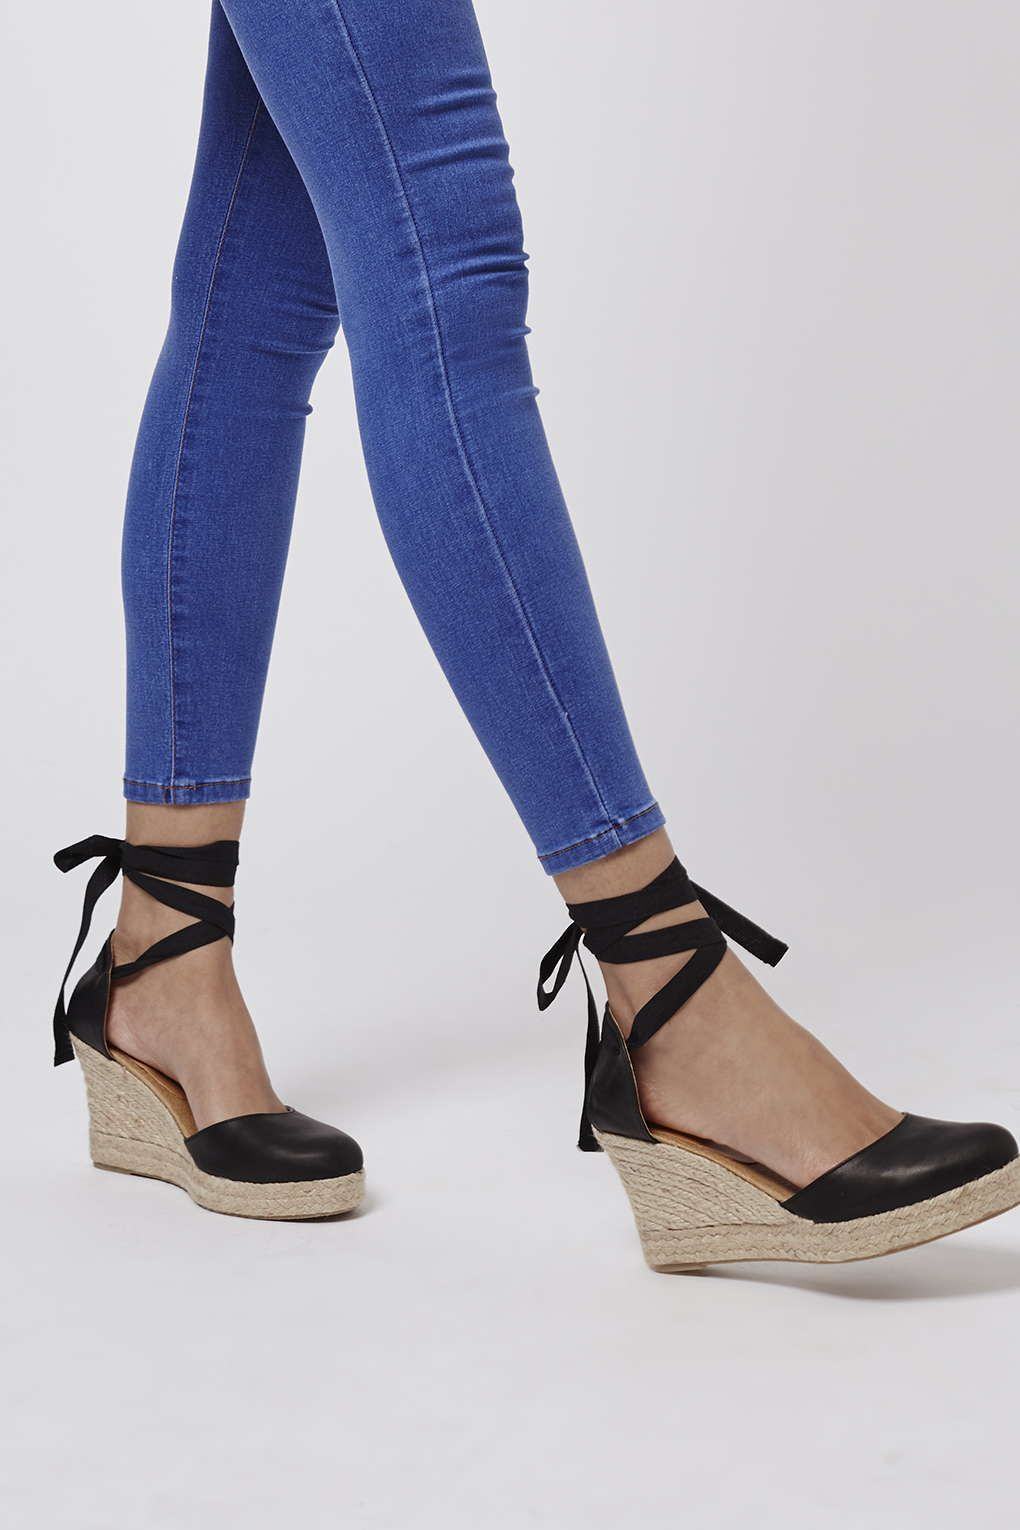 Designer Wedge Shoes Uk